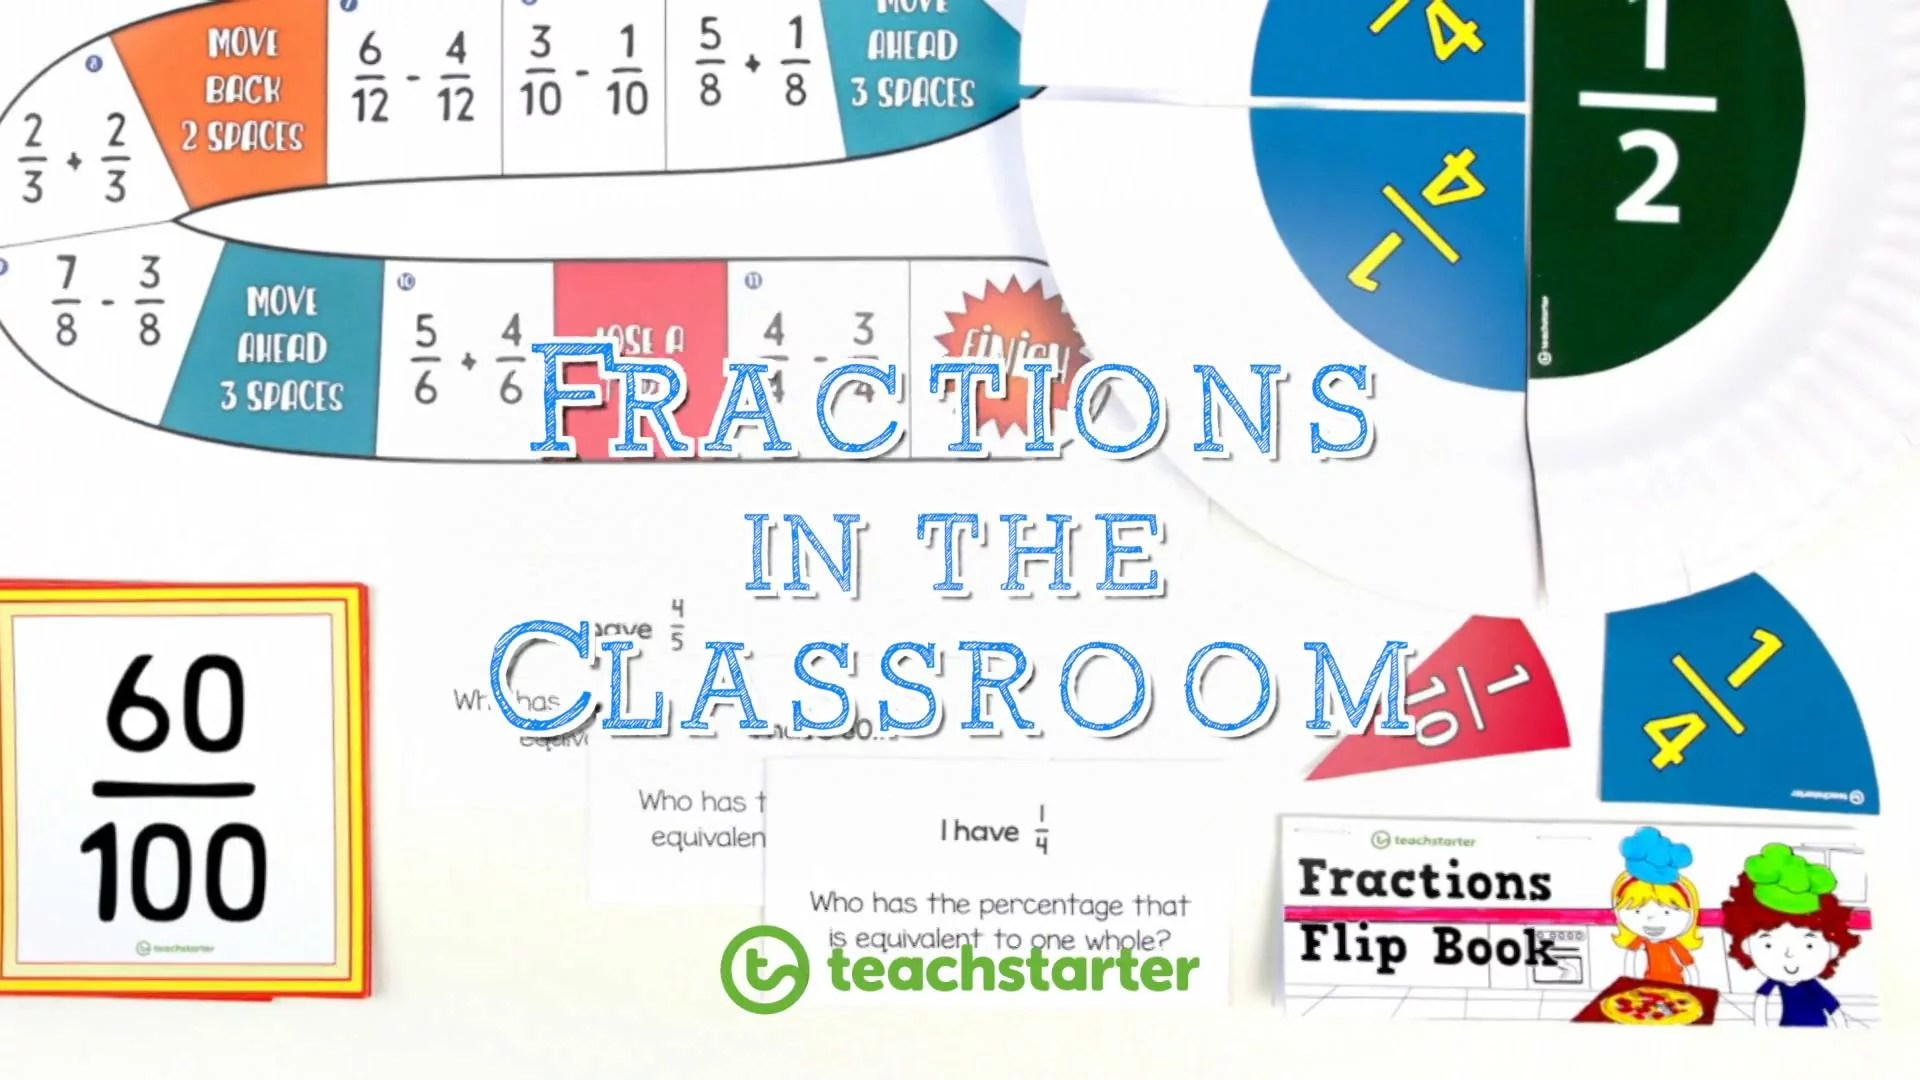 medium resolution of 31 Activities and Resources for Teaching Fractions in the Classroom   Teach  Starter